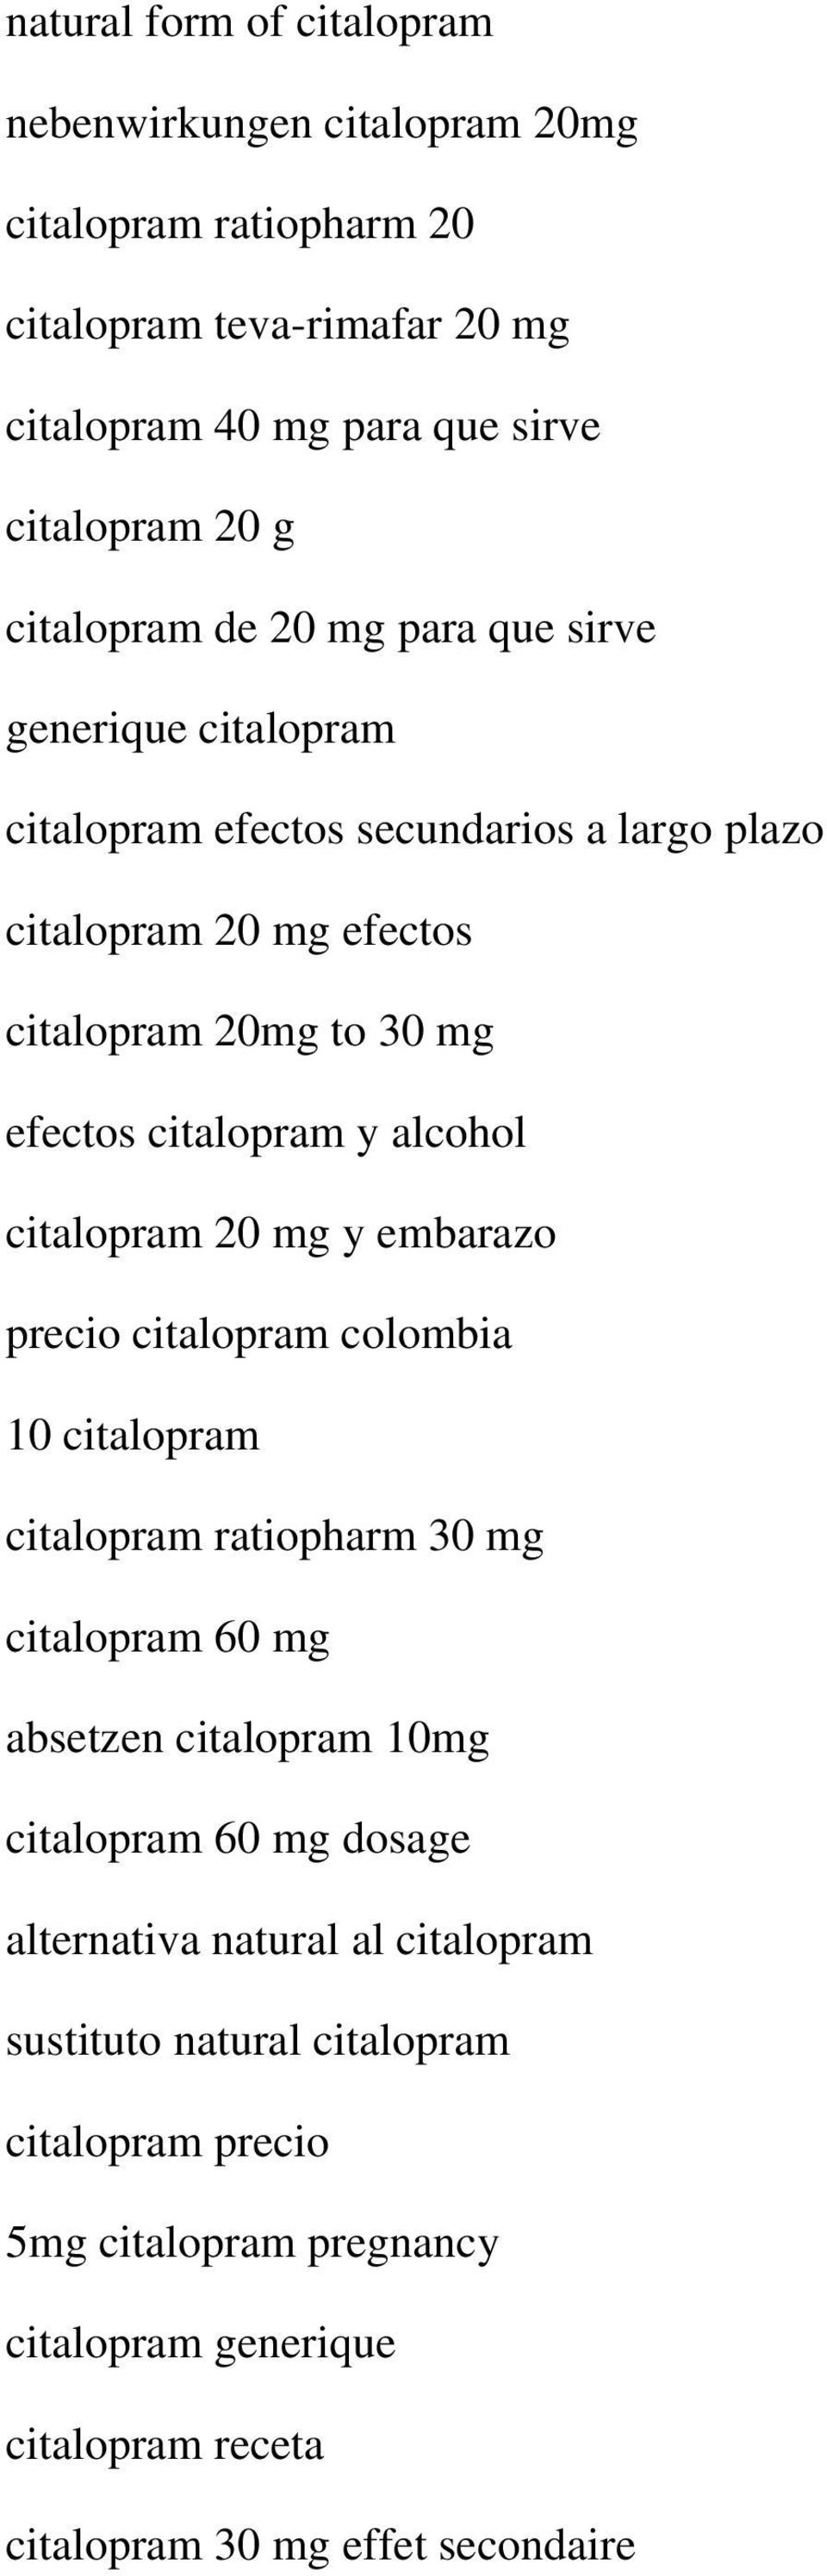 where to buy clomid online safely